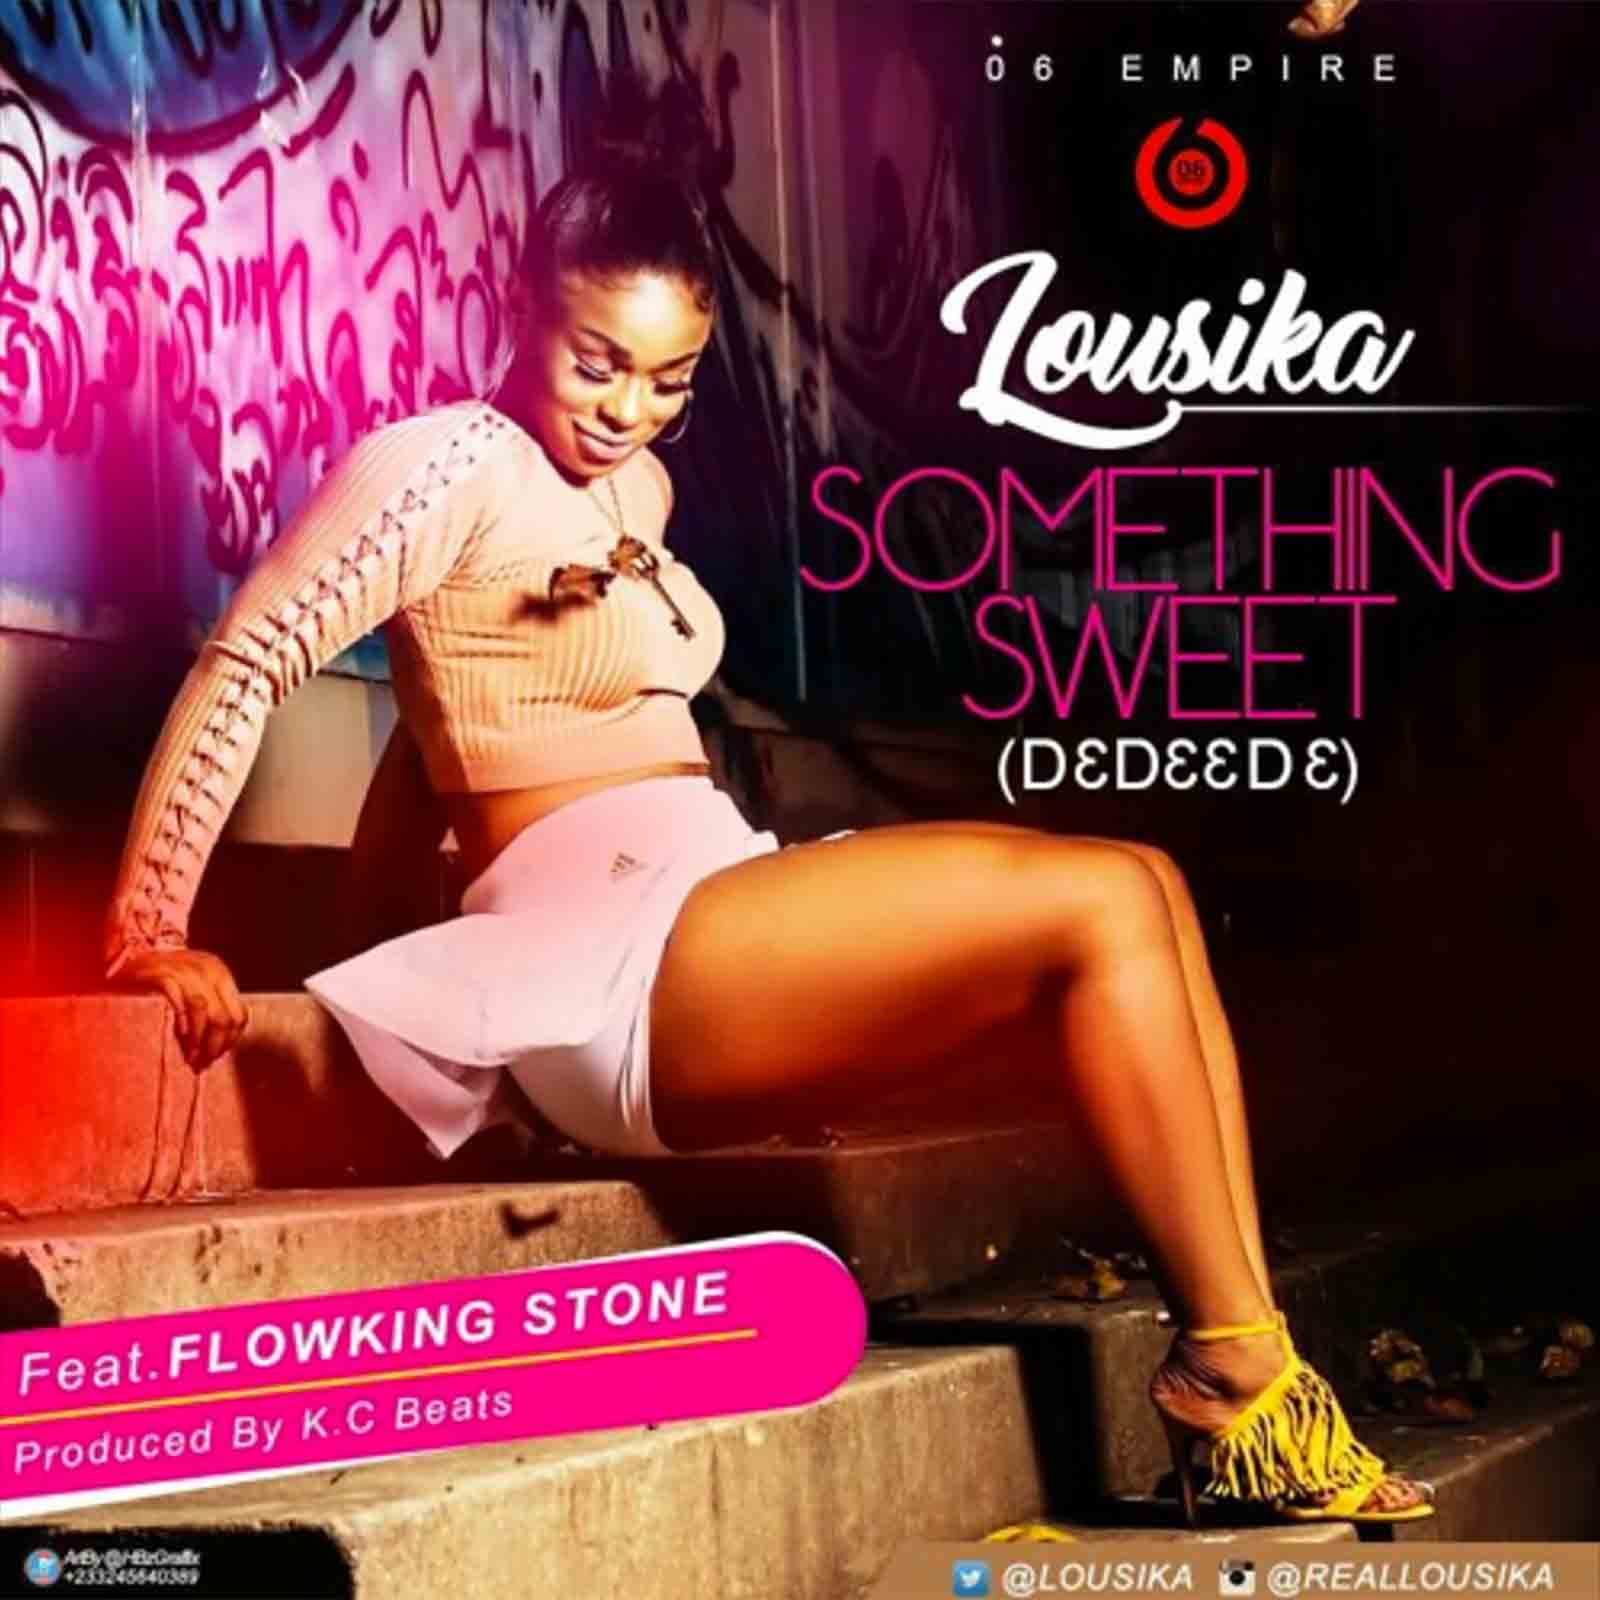 Something Sweet (D3d33d3) by Lousika feat. Flowking Stone